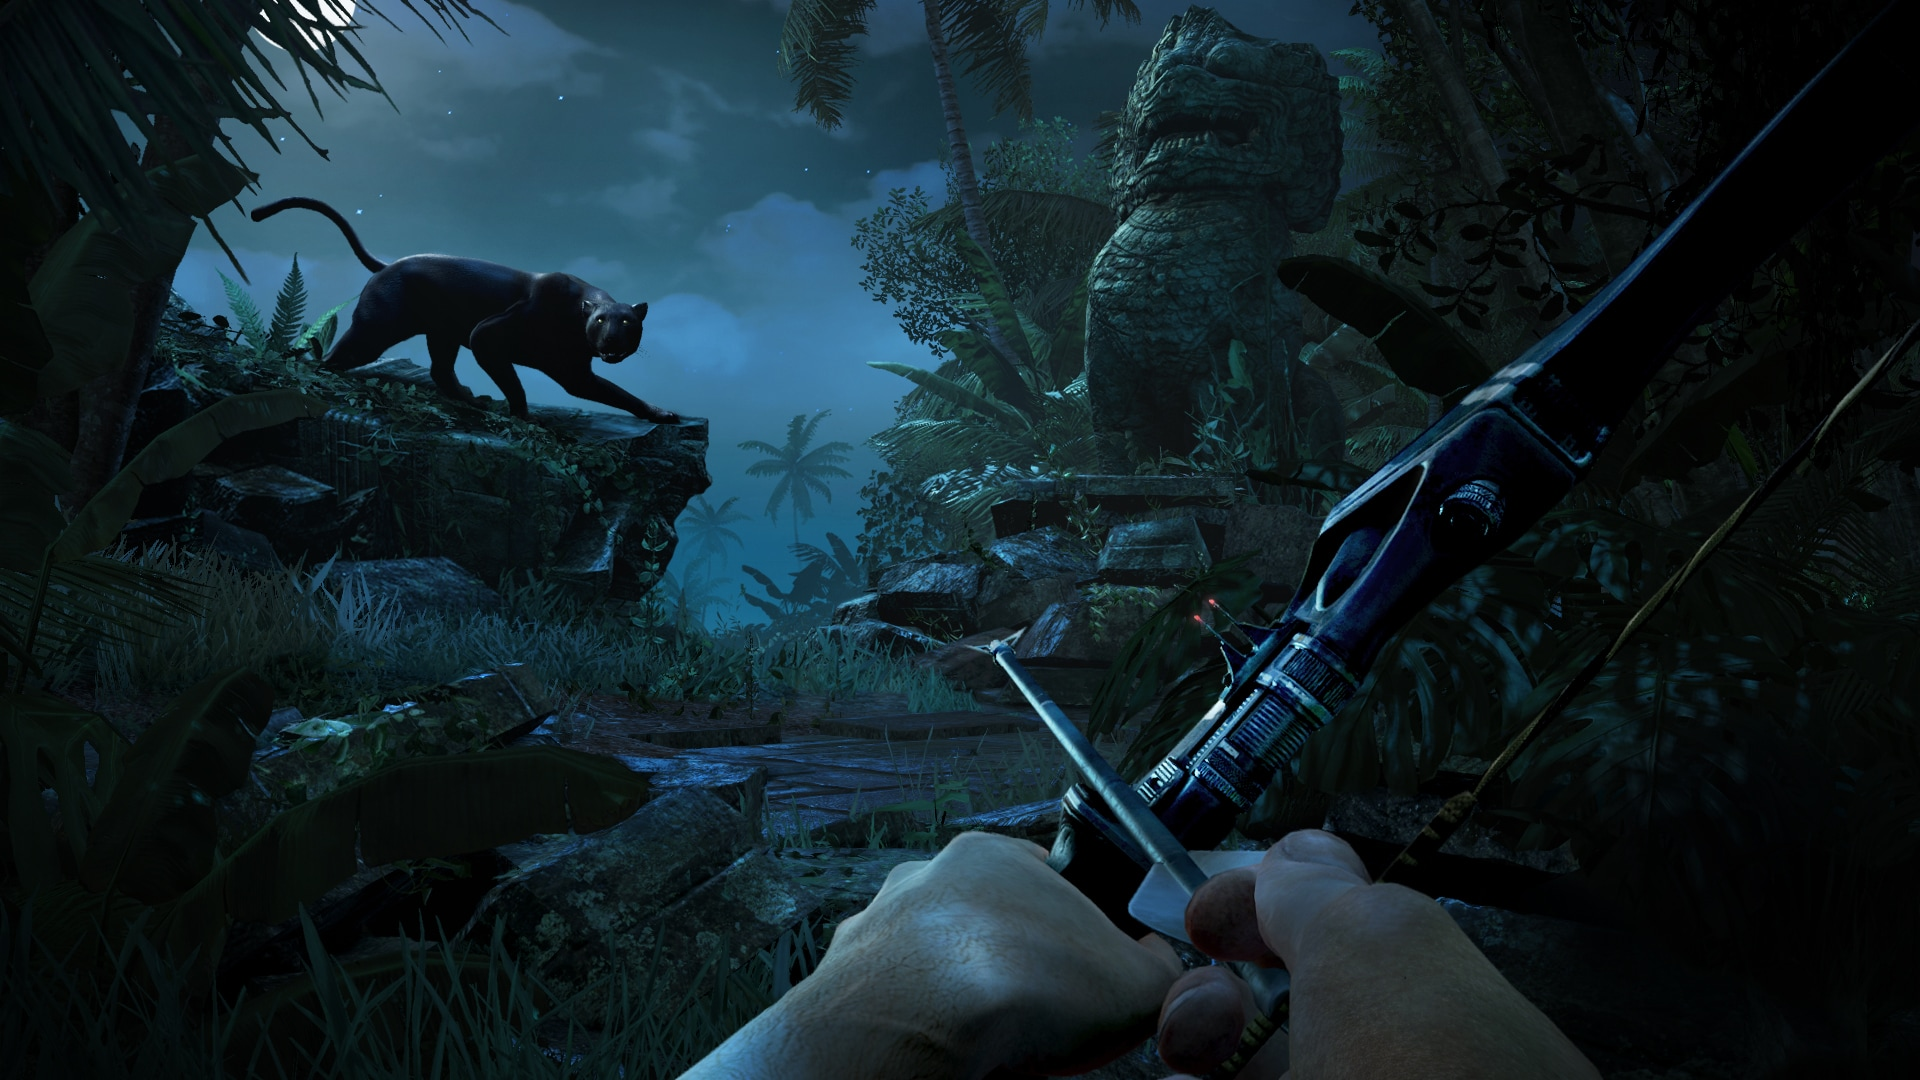 Secrets Of Happiness Hd Gun S Wallpaper: Far Cry 3